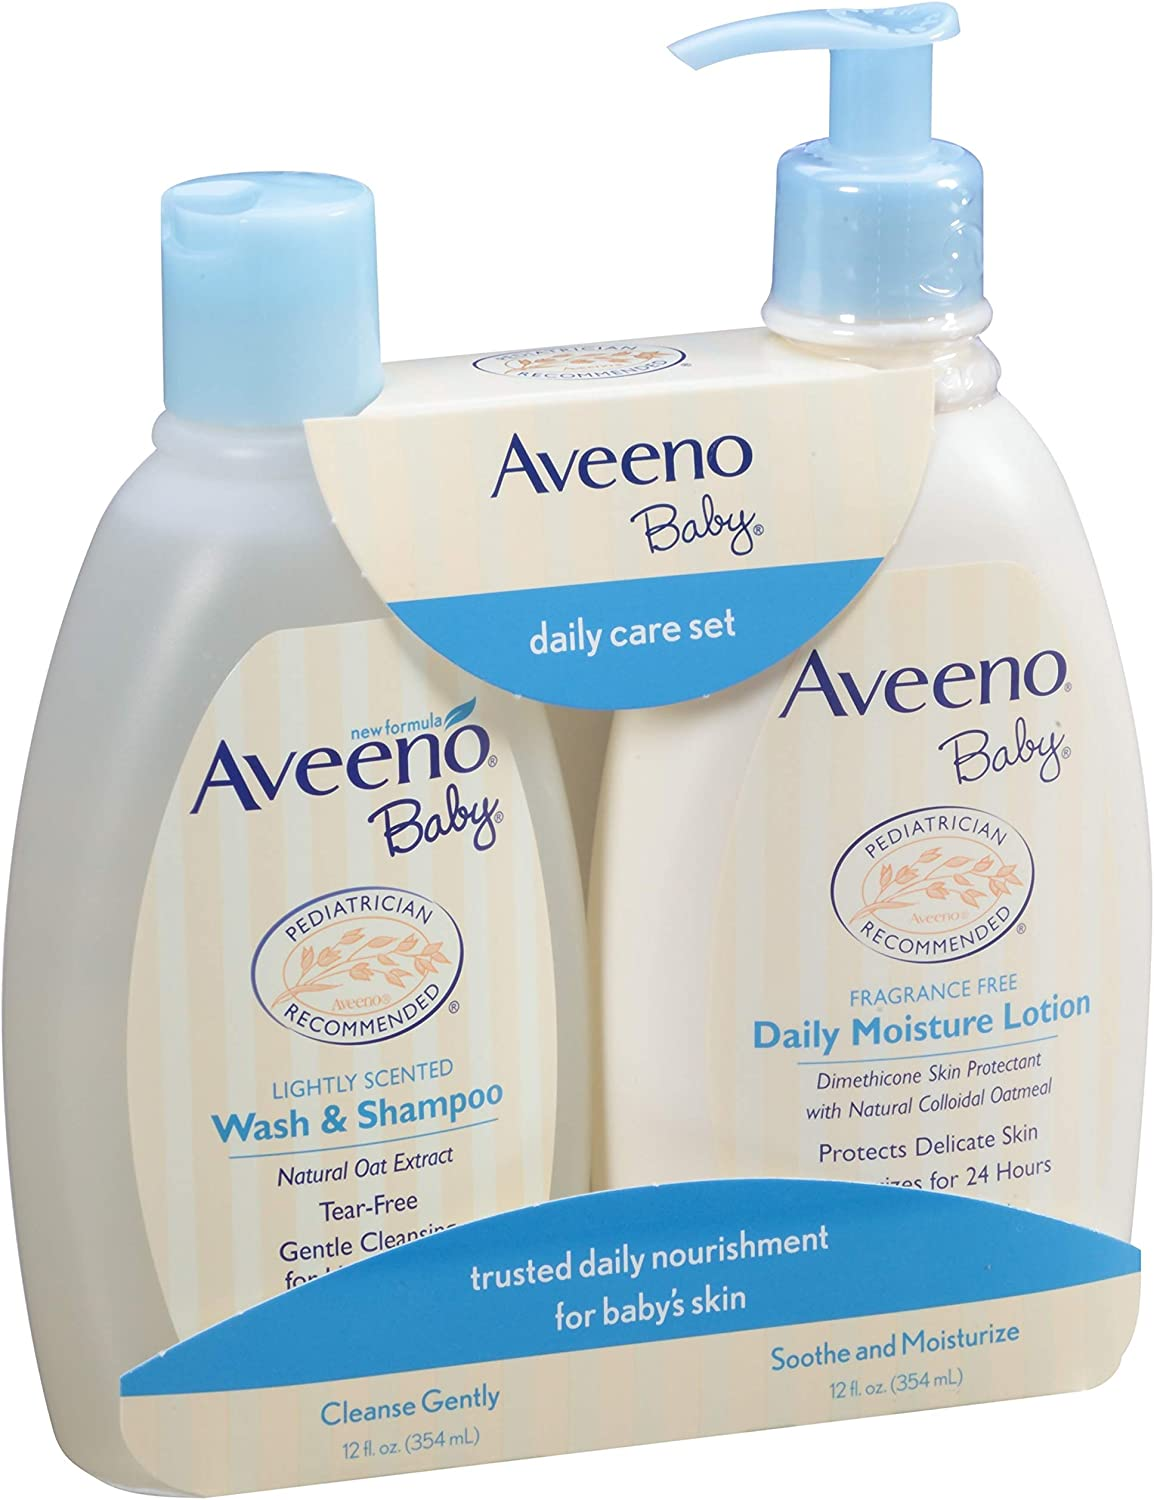 Aveeno Baby Gentle Moisturizing Daily Care Set, Natural Oat Extract, Natural Colloidal Oatmeal, 2 Items: Health & Personal Care